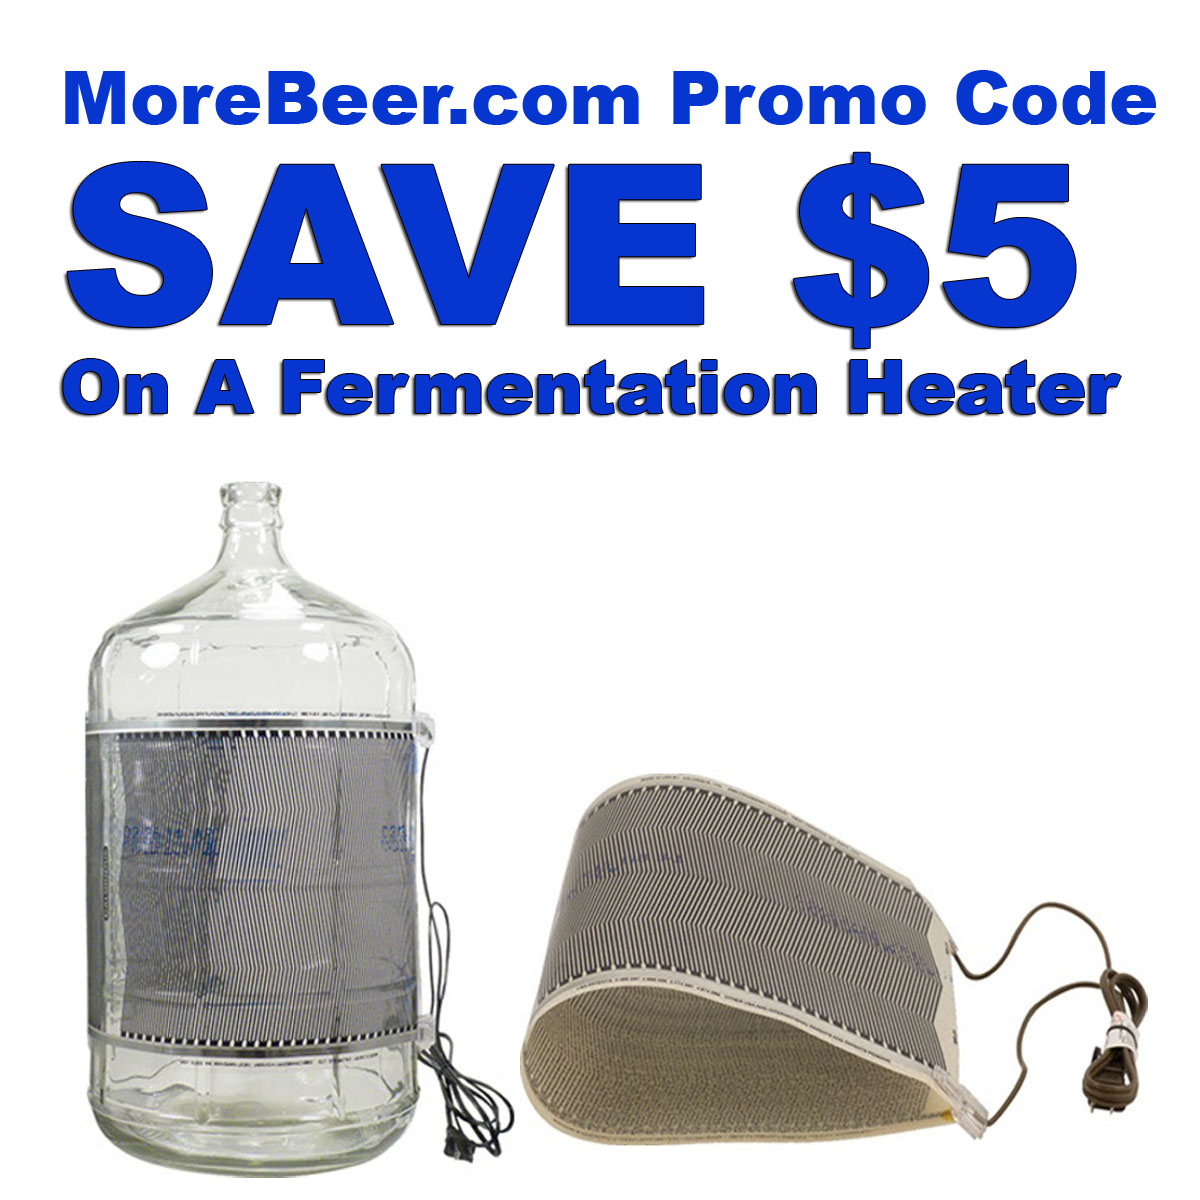 MoreBeer Save $5 On A Fermentation Heater Coupon Code